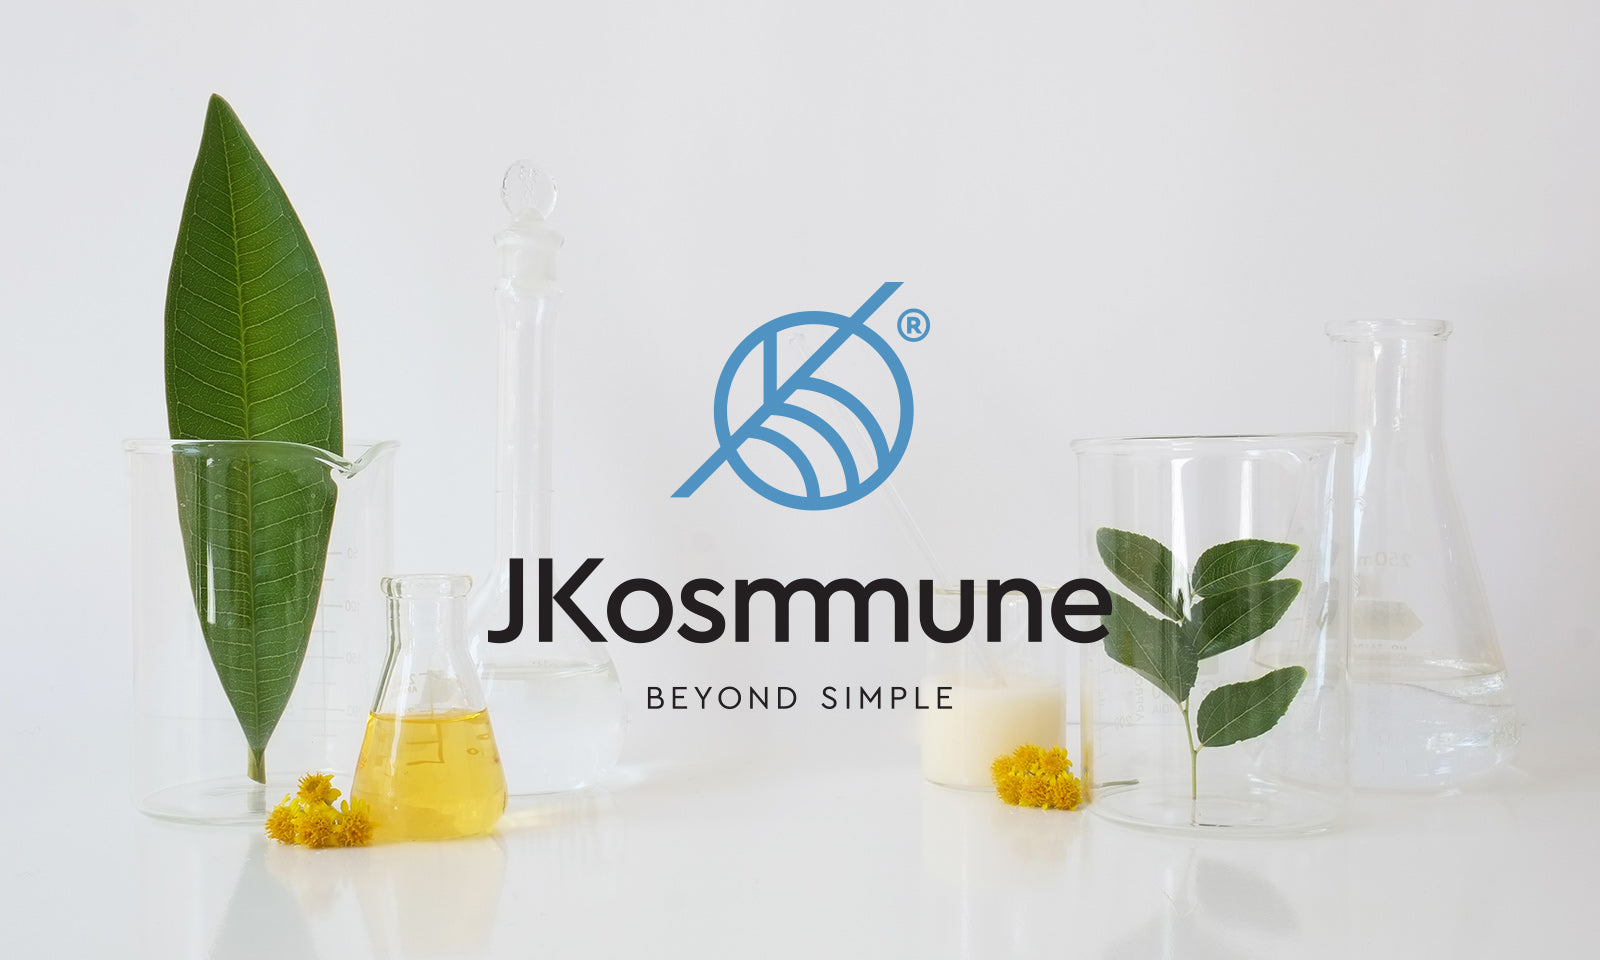 JKosmmune Beta Glucan Korean skincare and hair care